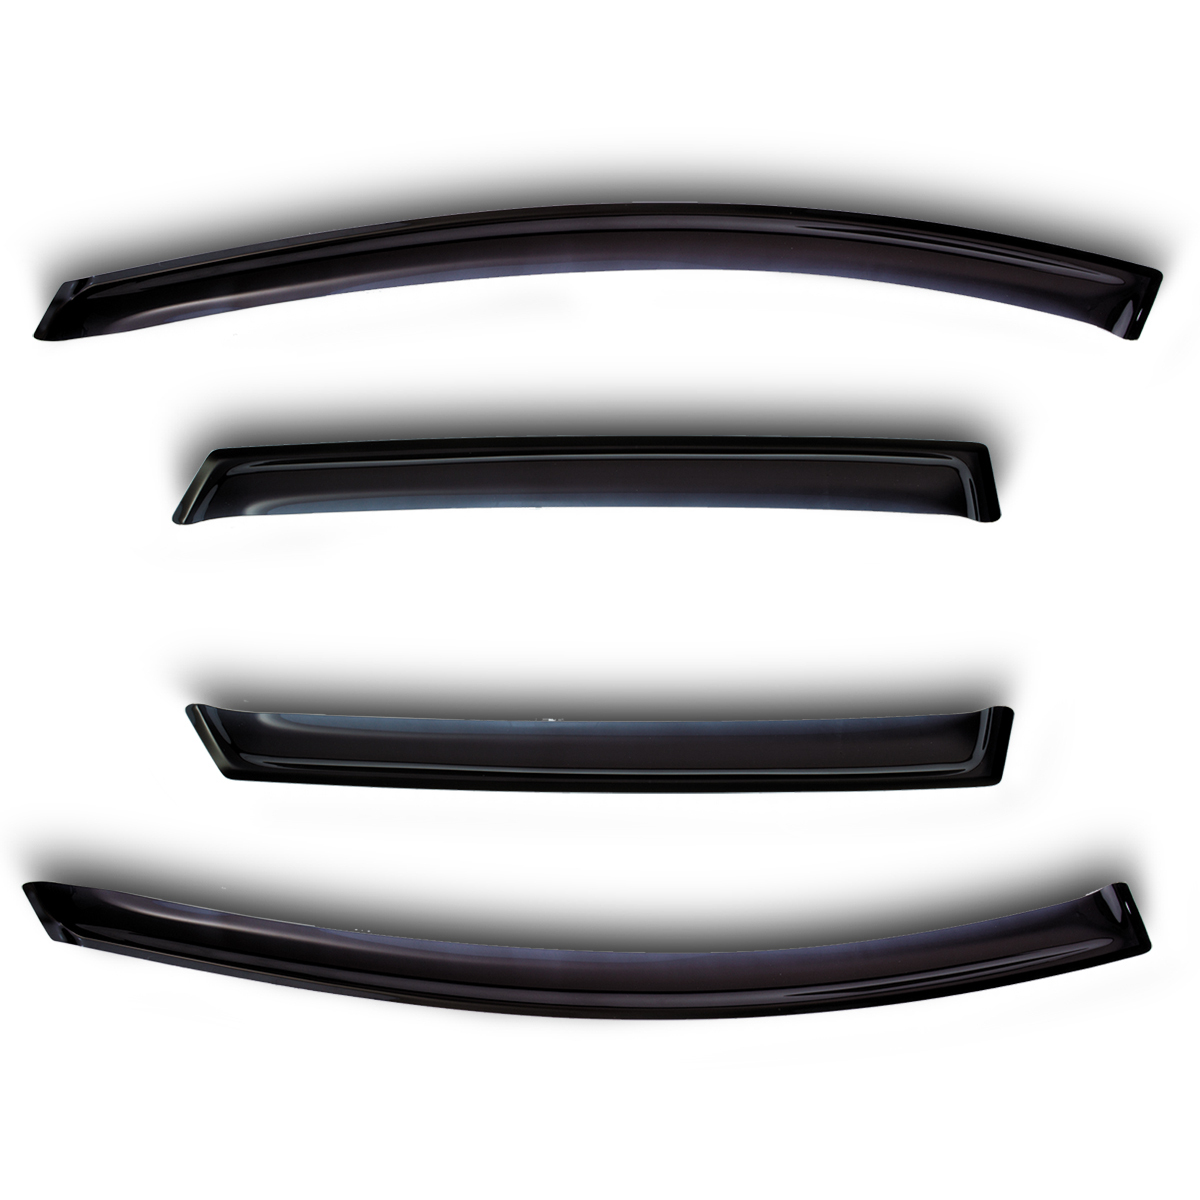 Window Deflectors 4 Door For Land Rover Range Rover 2002-2012 (Land Rover Rence Rover)